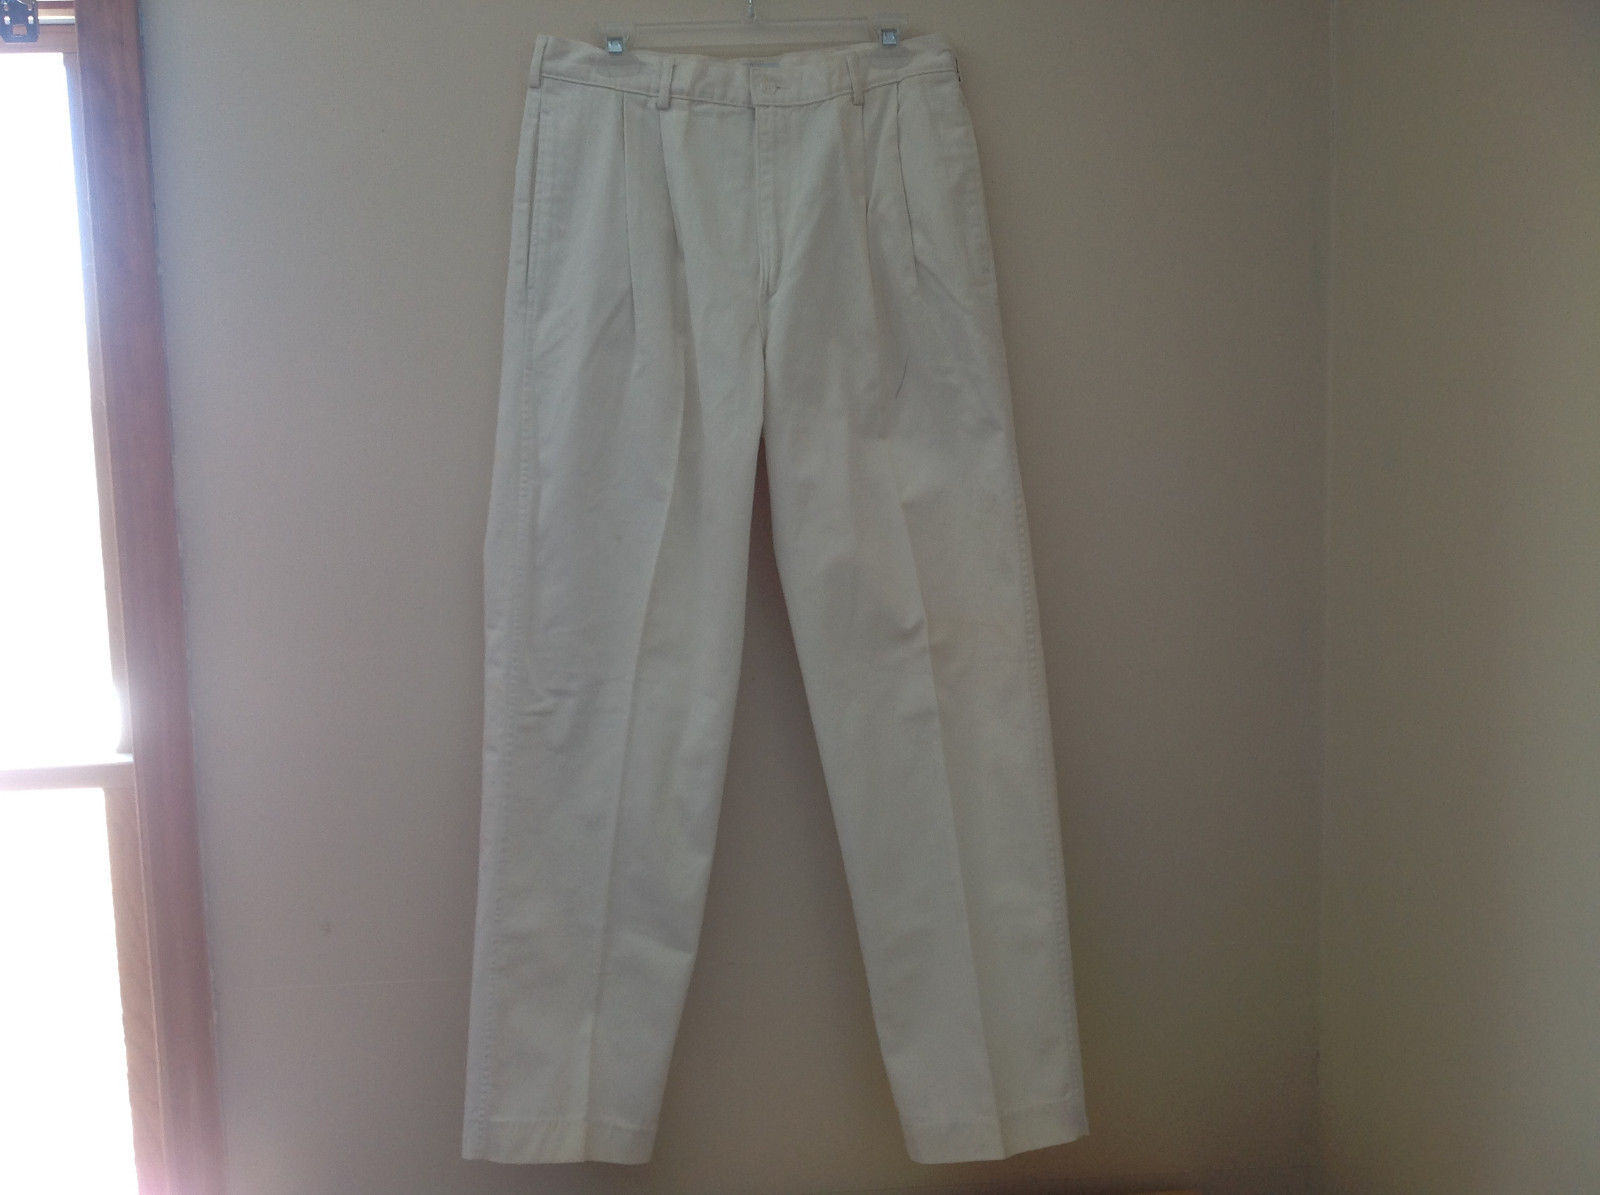 Off White Four Pocket Dress Pants Button and Zipper Front Pleated J. Peterman Co